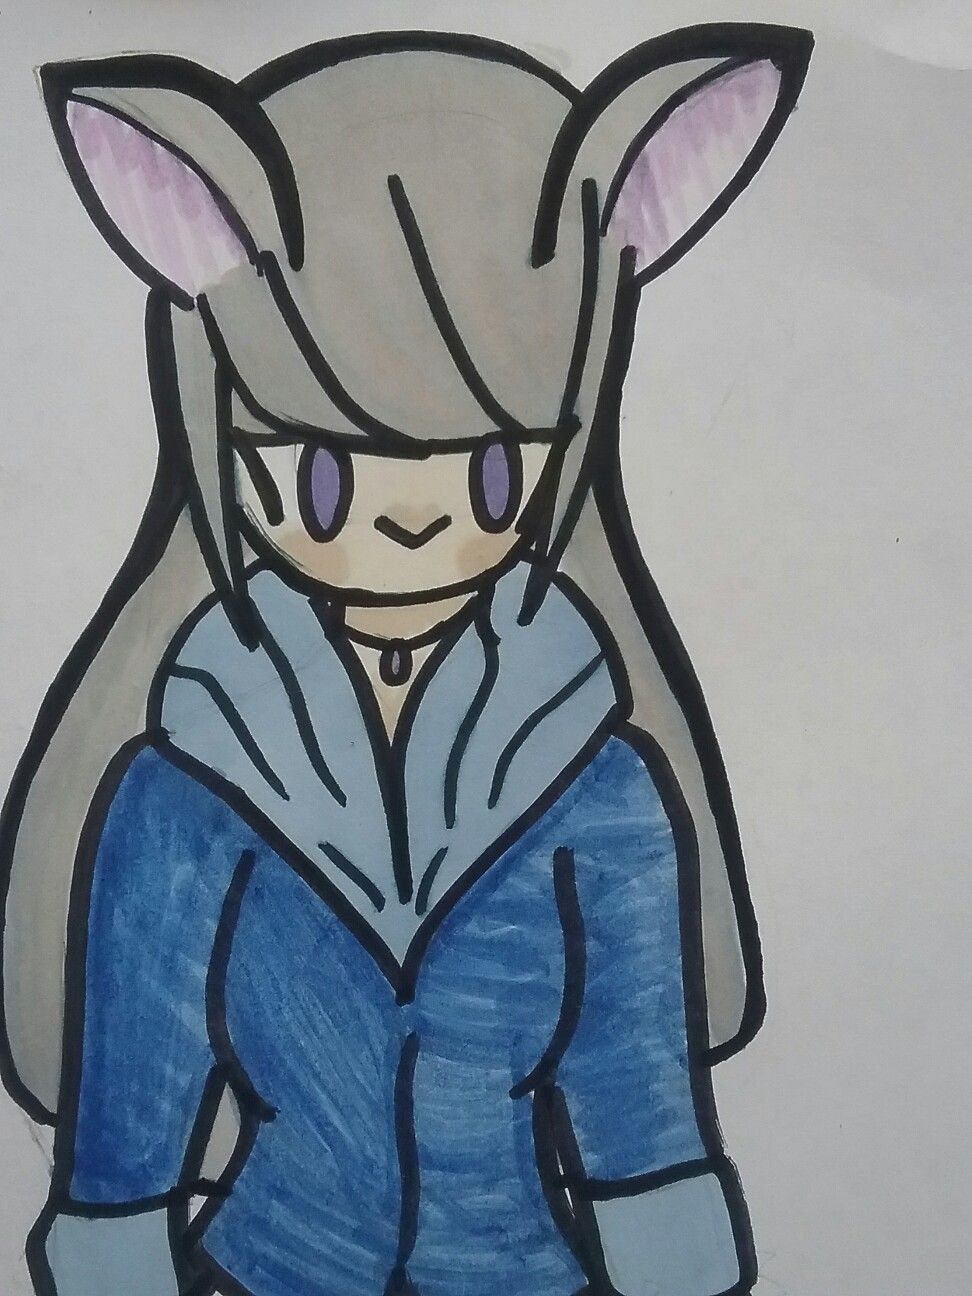 I know it's really bad but i kinda like the idea. Art by me (@•WaterLilly•)